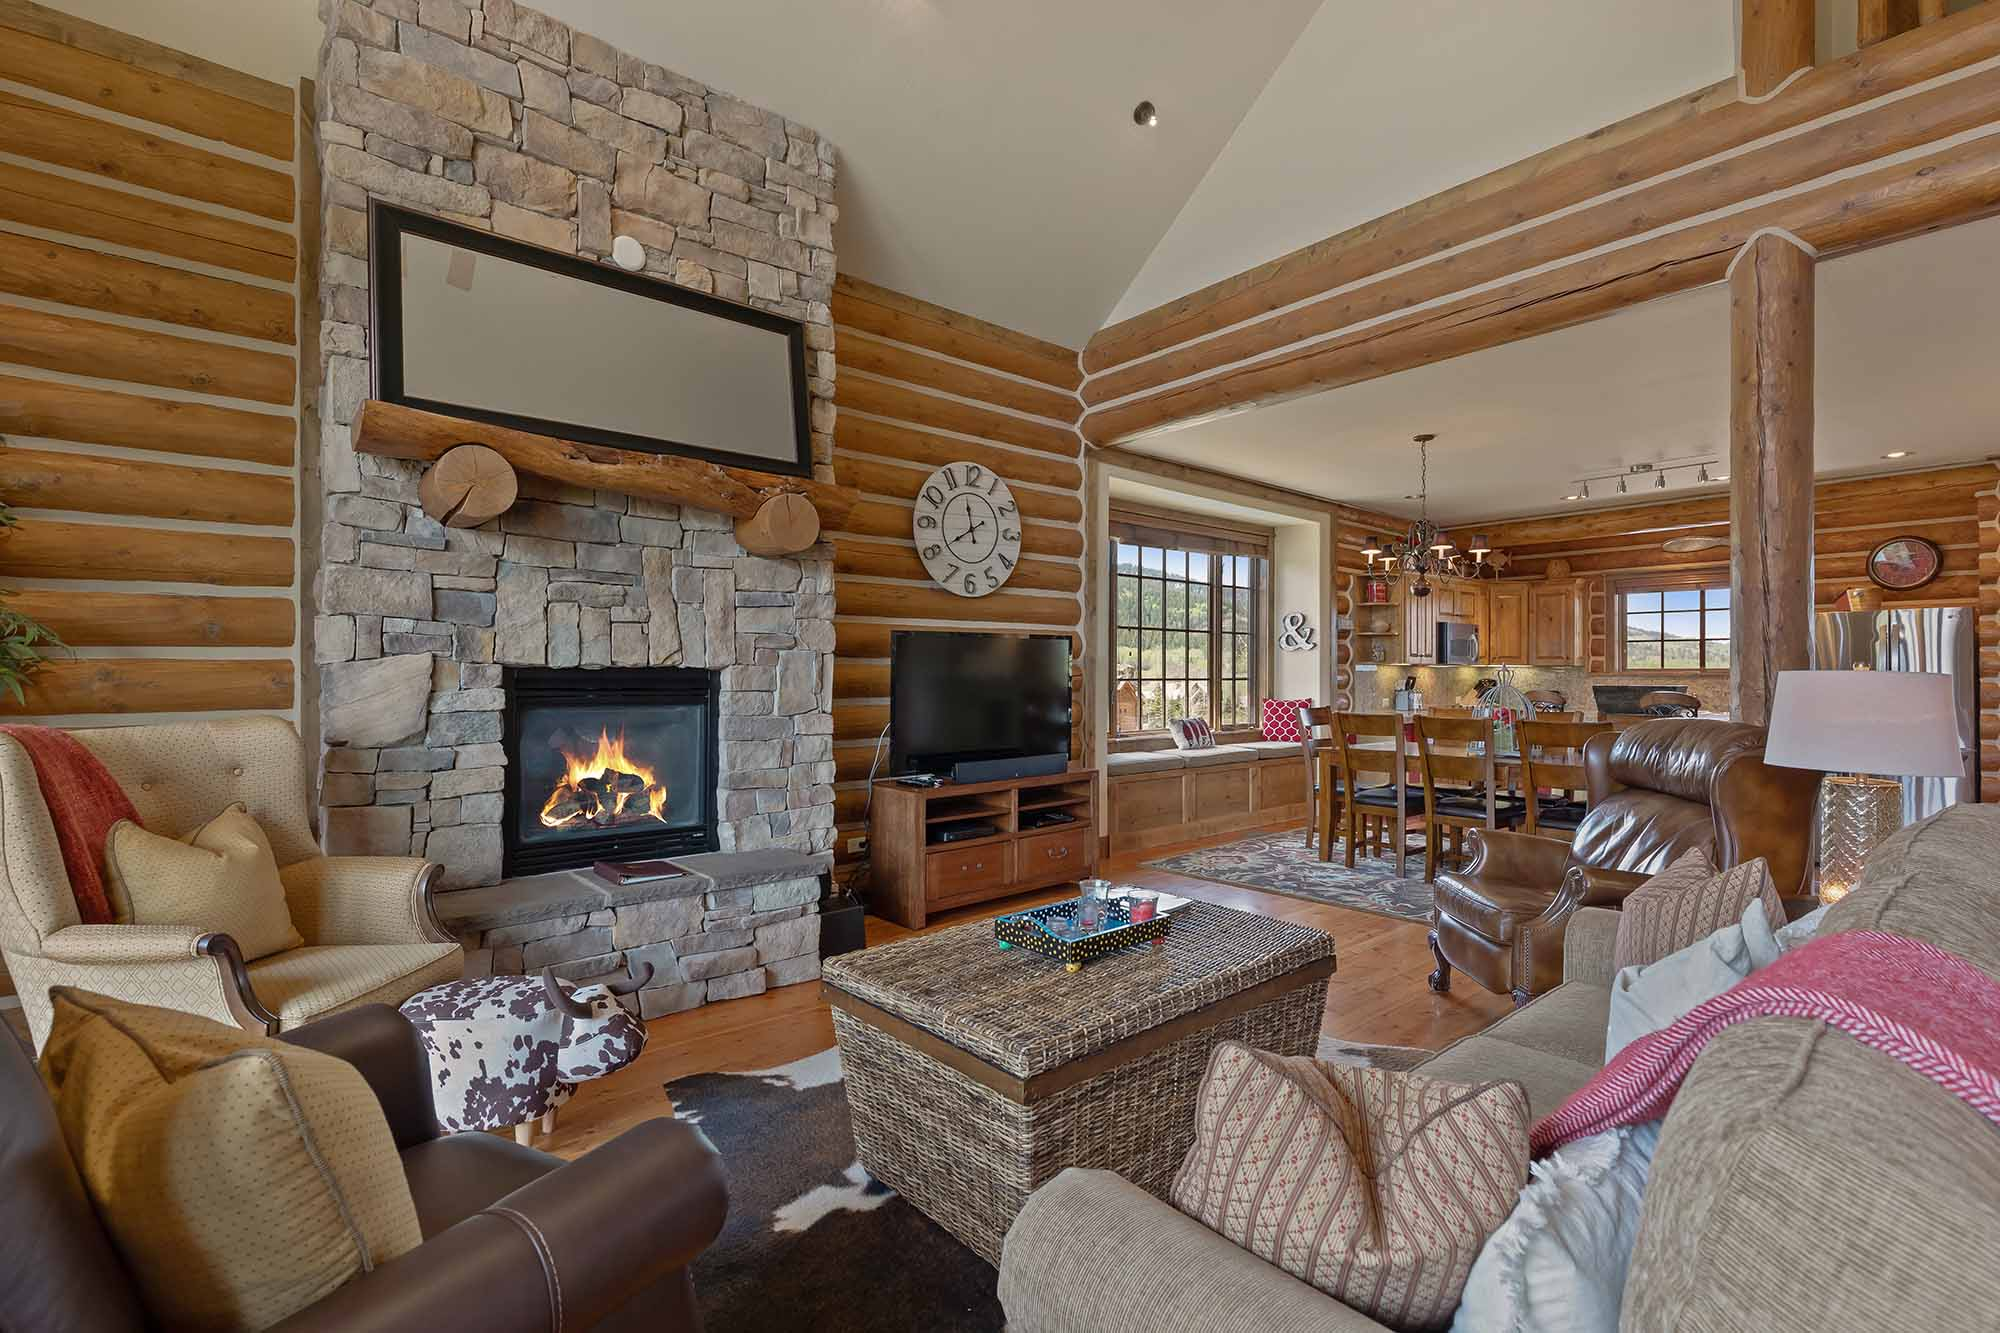 Rymell Log Cabin - 4 Bedroom - Teton Springs